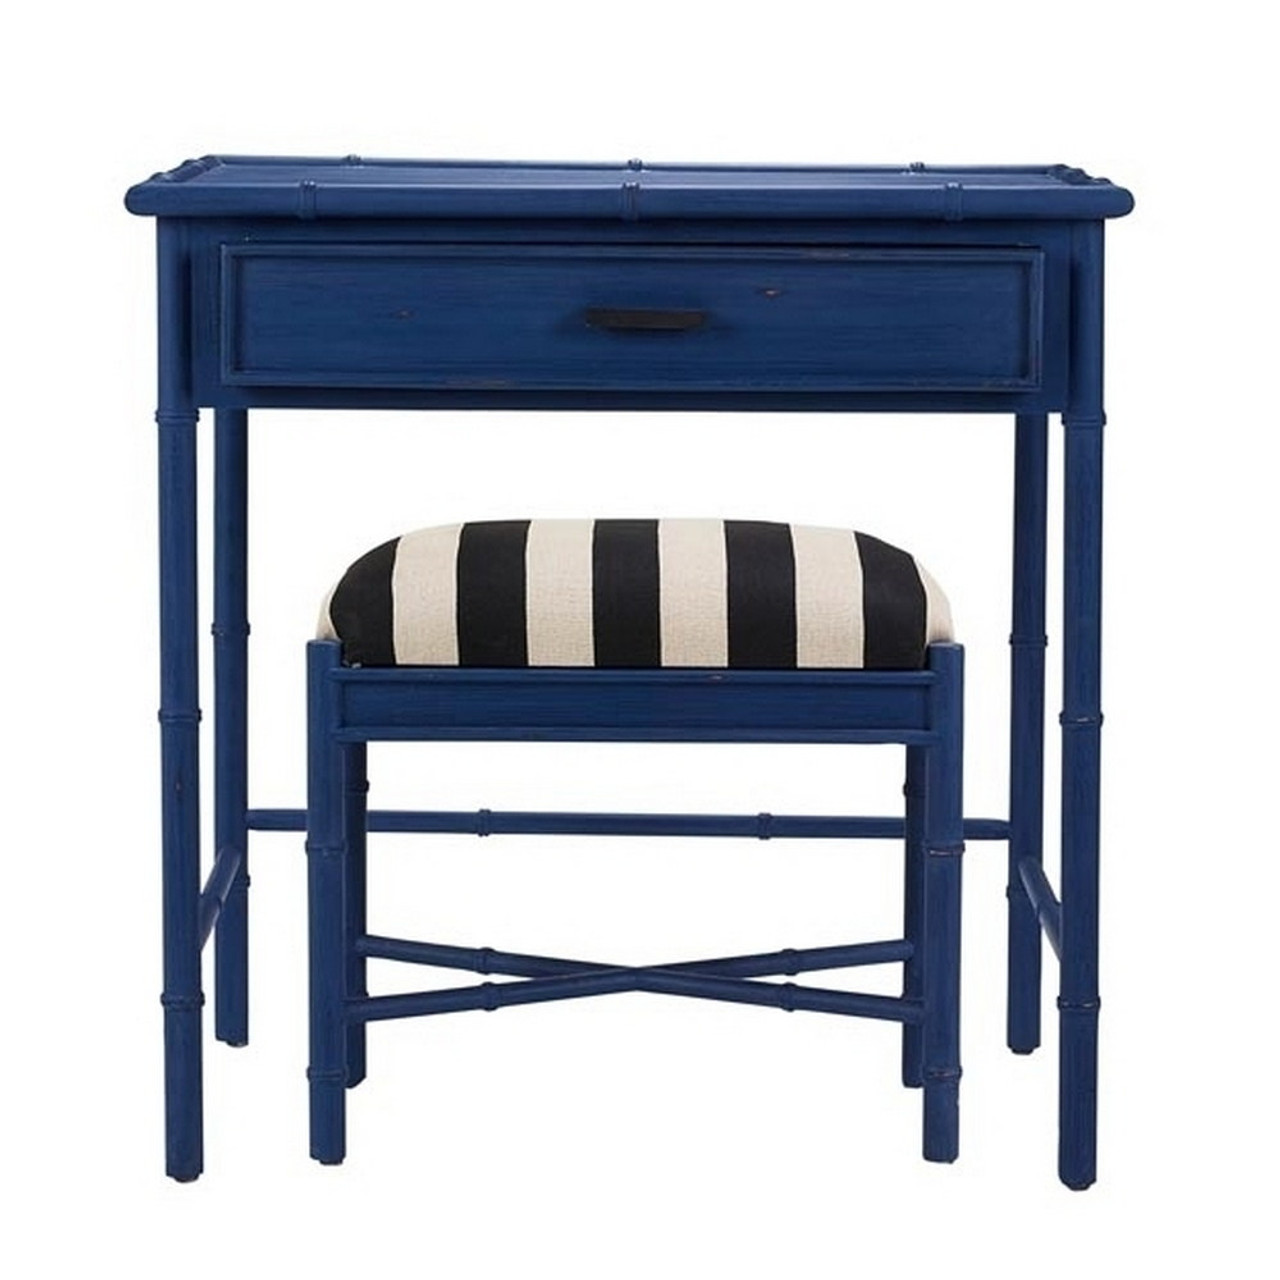 Cane Console W Stool Any Colour Furniture Office Study Desk